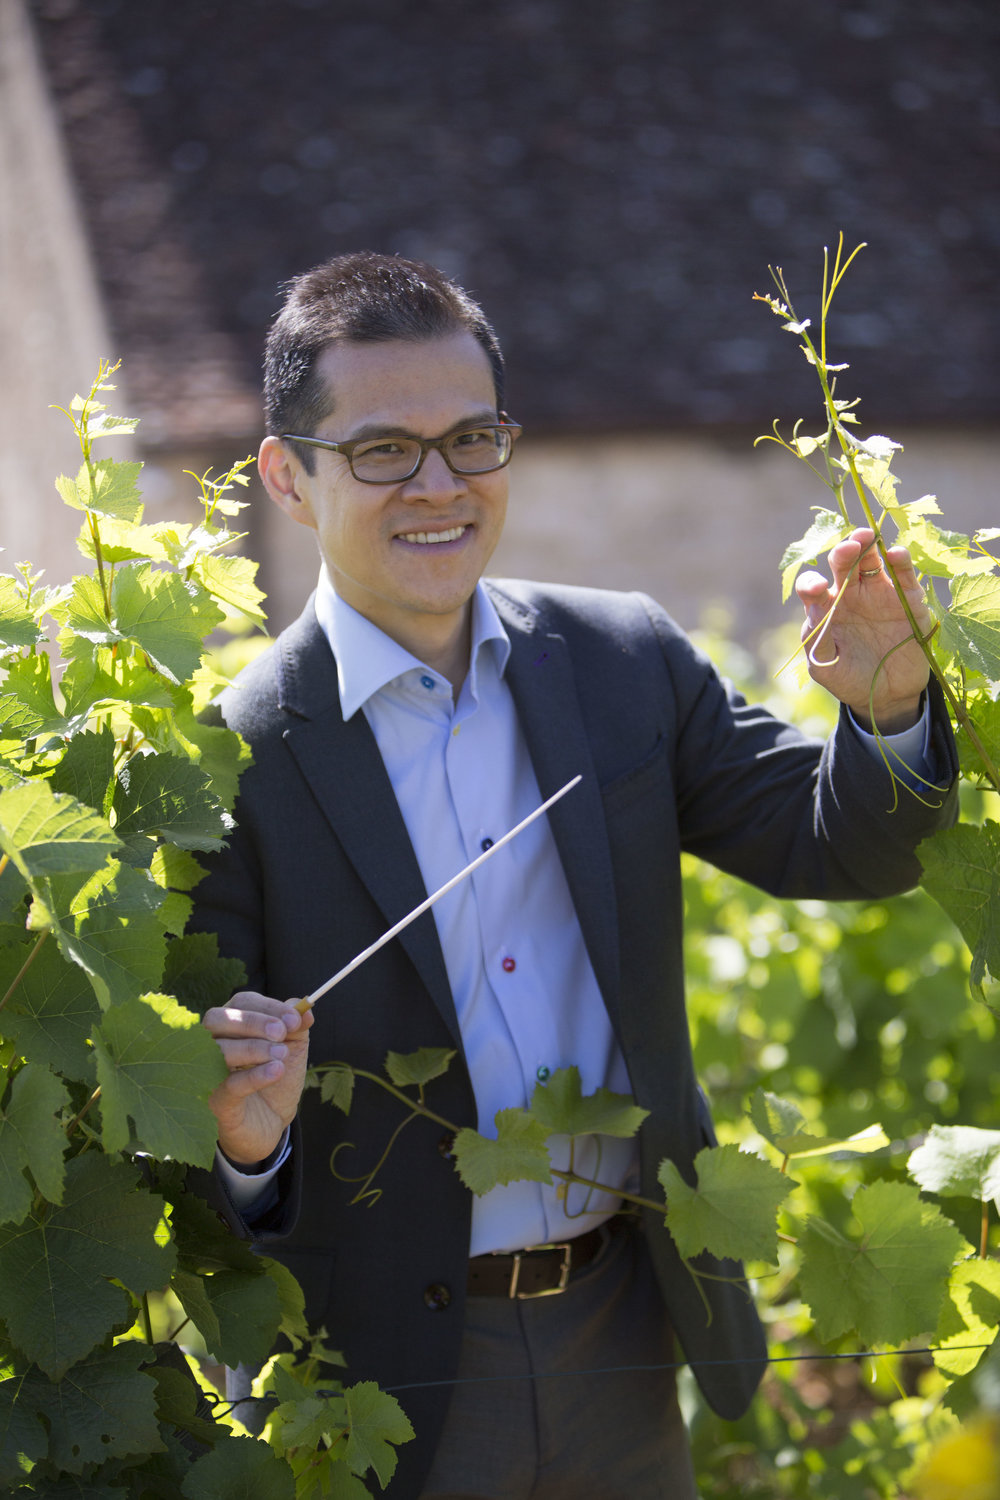 David Chan at the Château du Clos de Vougeot